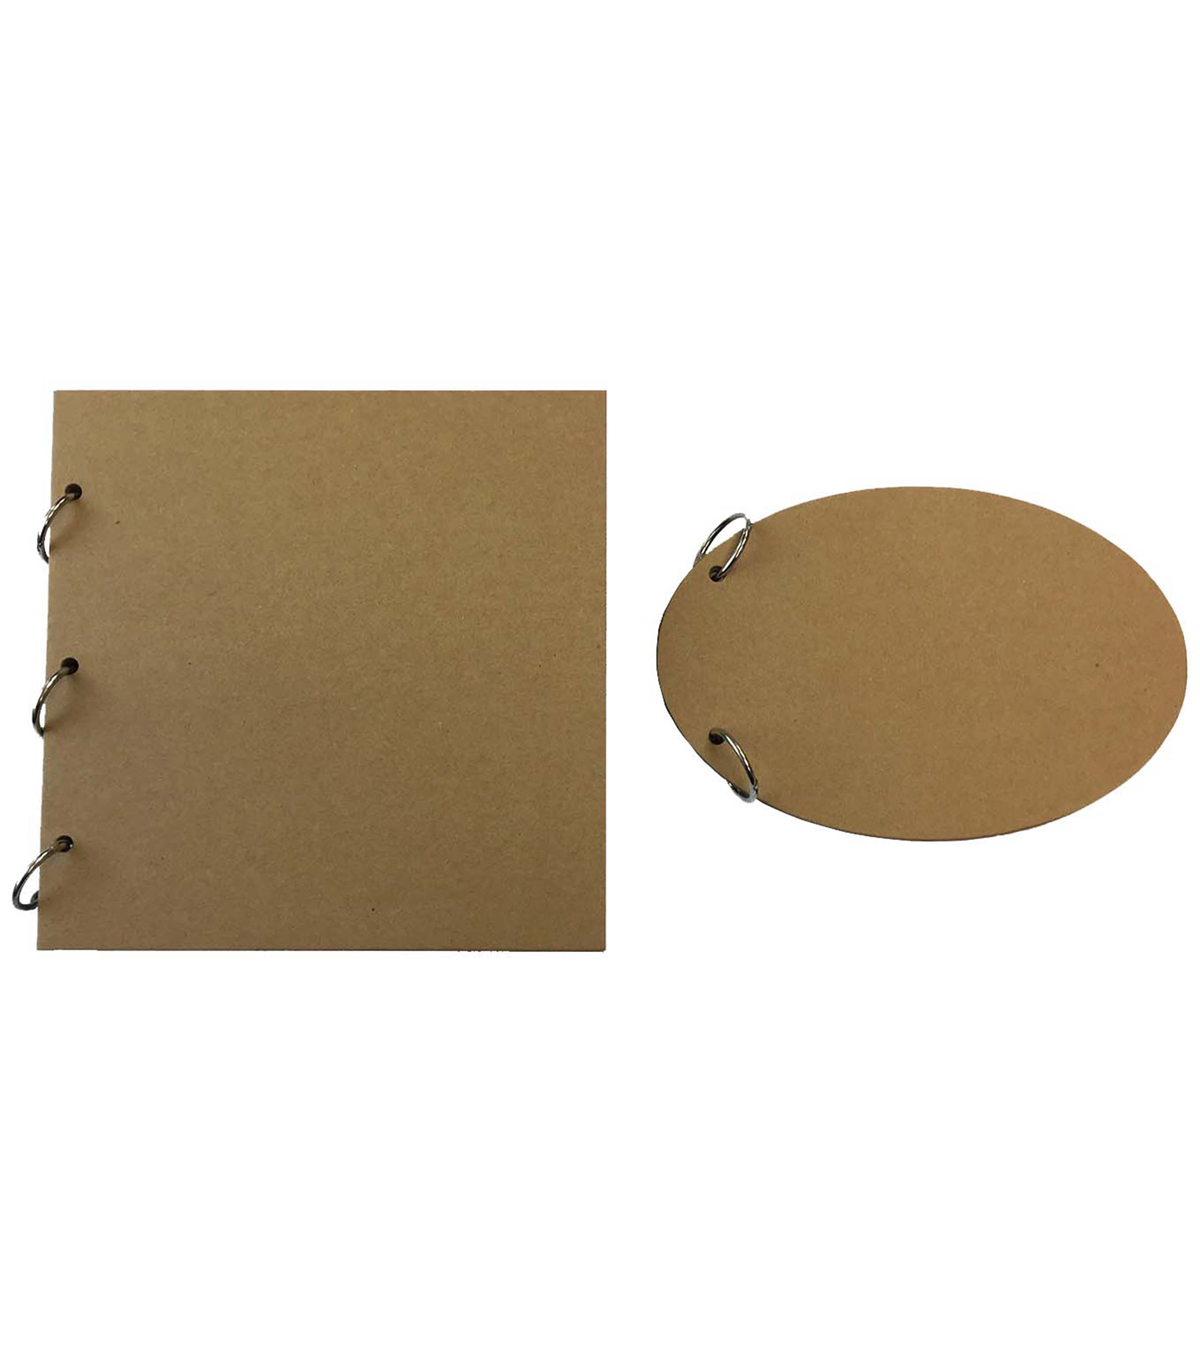 Park Lane Chipboard Craft Album-Square Oval